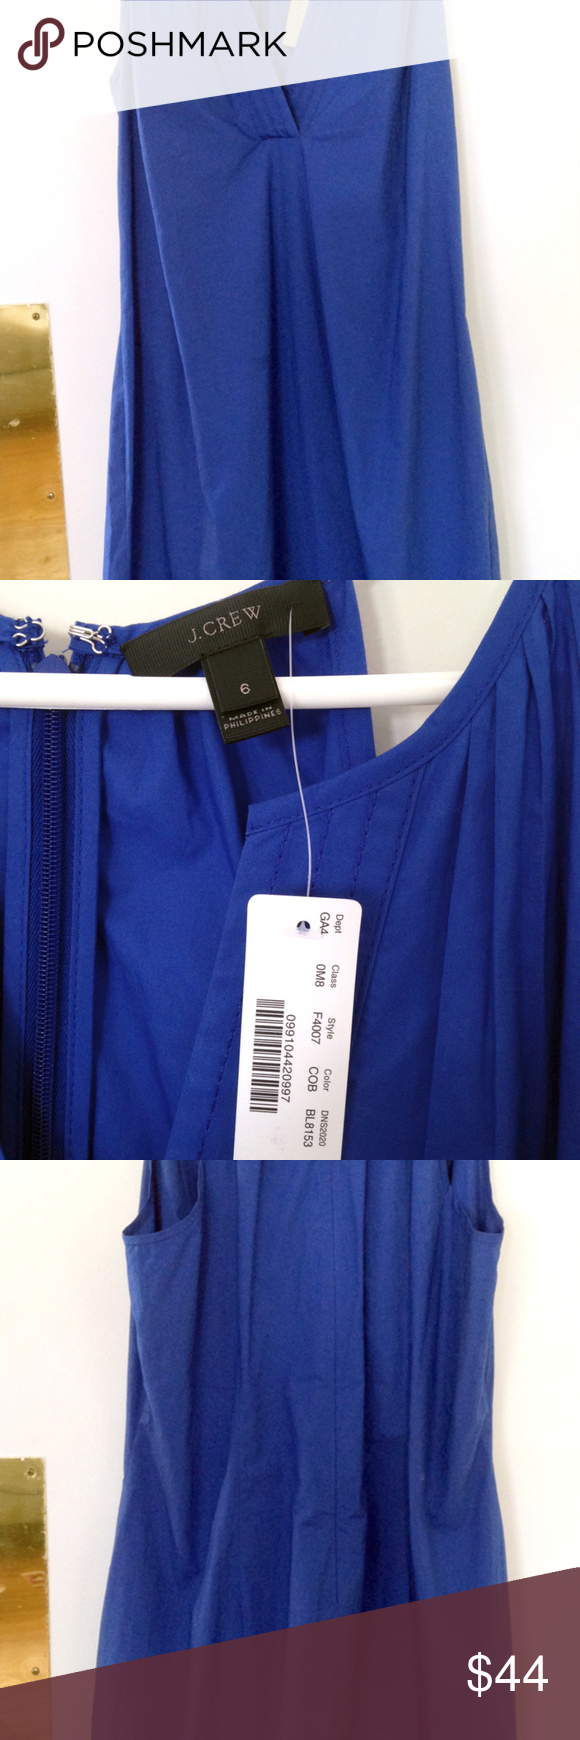 J. Crew flutter-hem Sundress Casual, crisp, cotton poplin sundress.  Great with flip flops or over your swim suit.  You can dress it up too!  Never worn, tags still attached.  Above the knee. J. Crew Dresses Midi